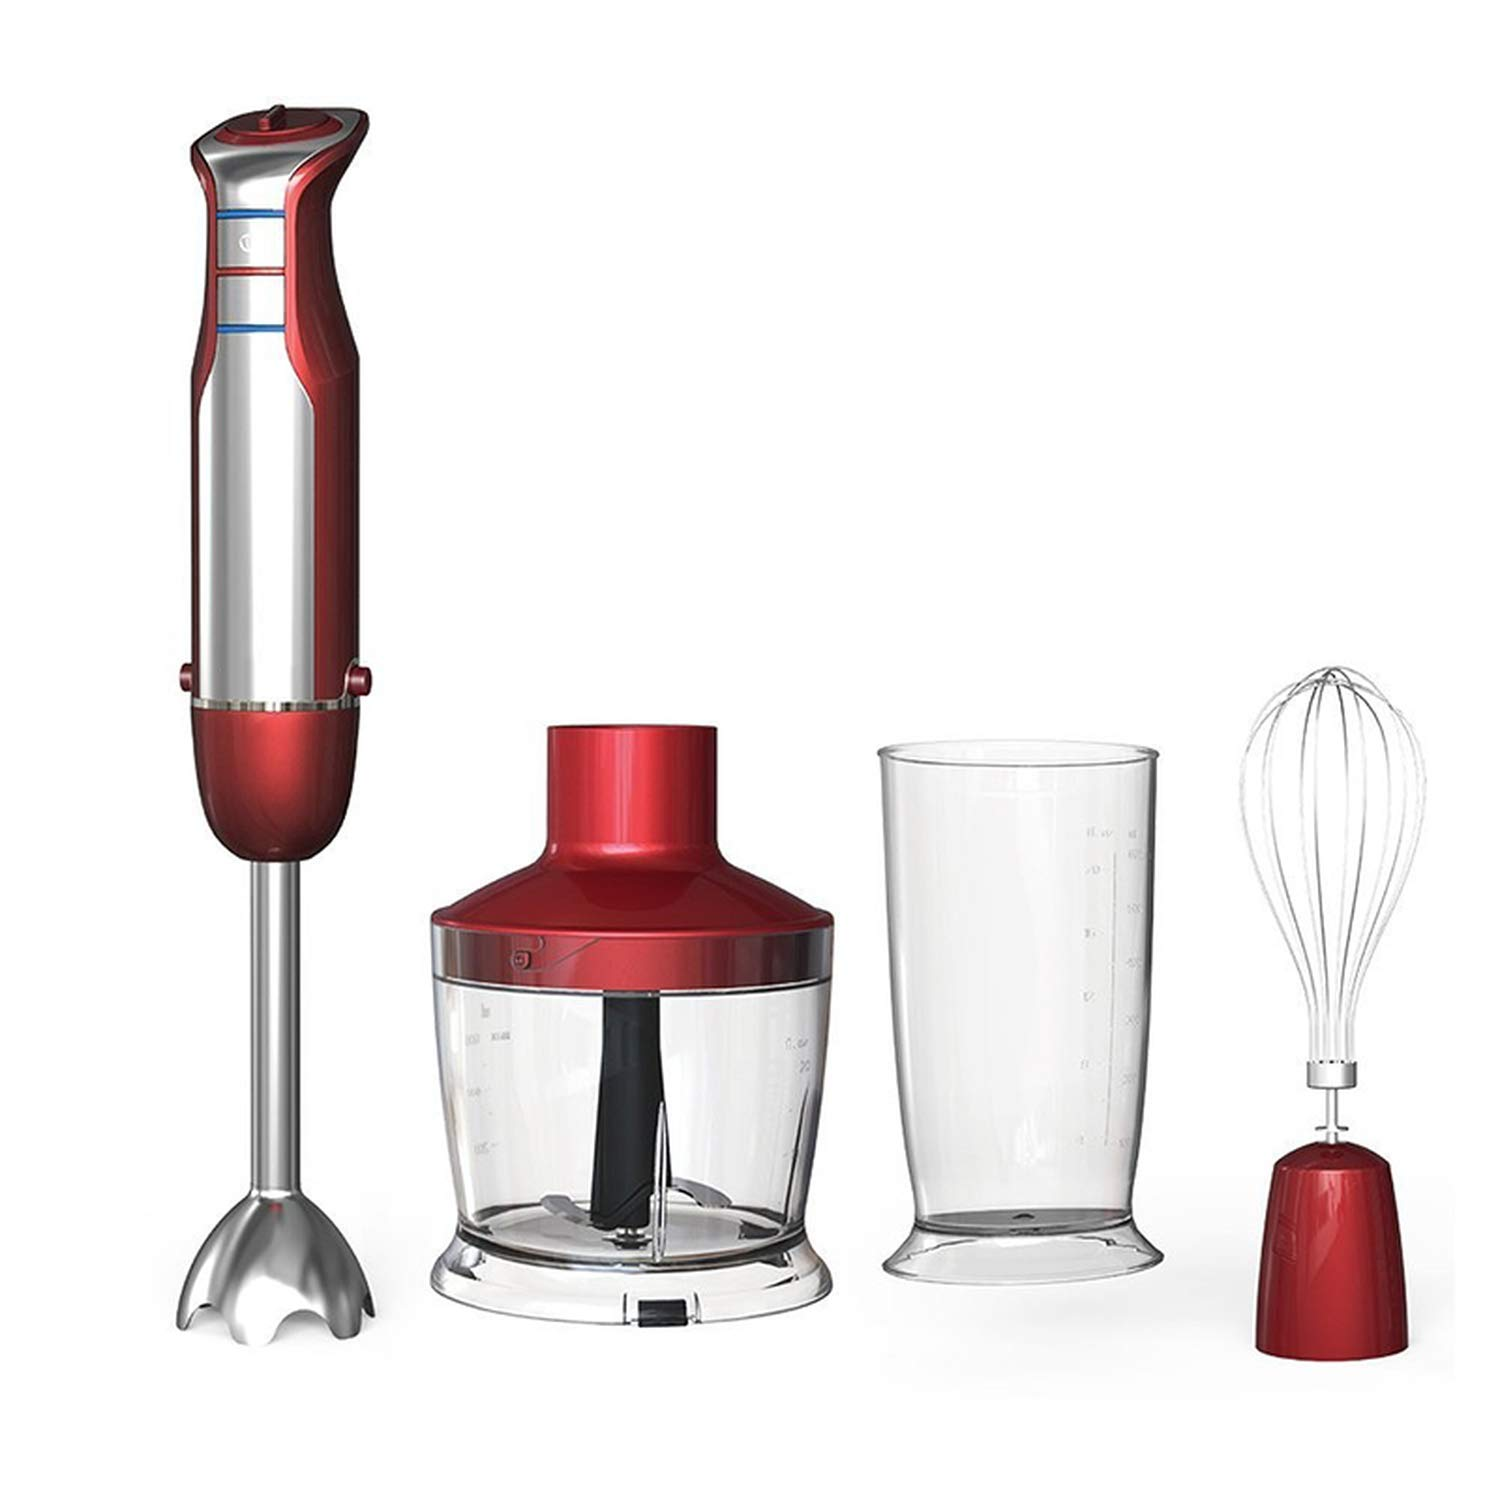 6 Speed Powerful Immersion Hand Blender 800W 4-in-1 Hand Blender mixer with Food Processor Smoothie Bar Fruit Blender,Red,4 in 1,US Plug